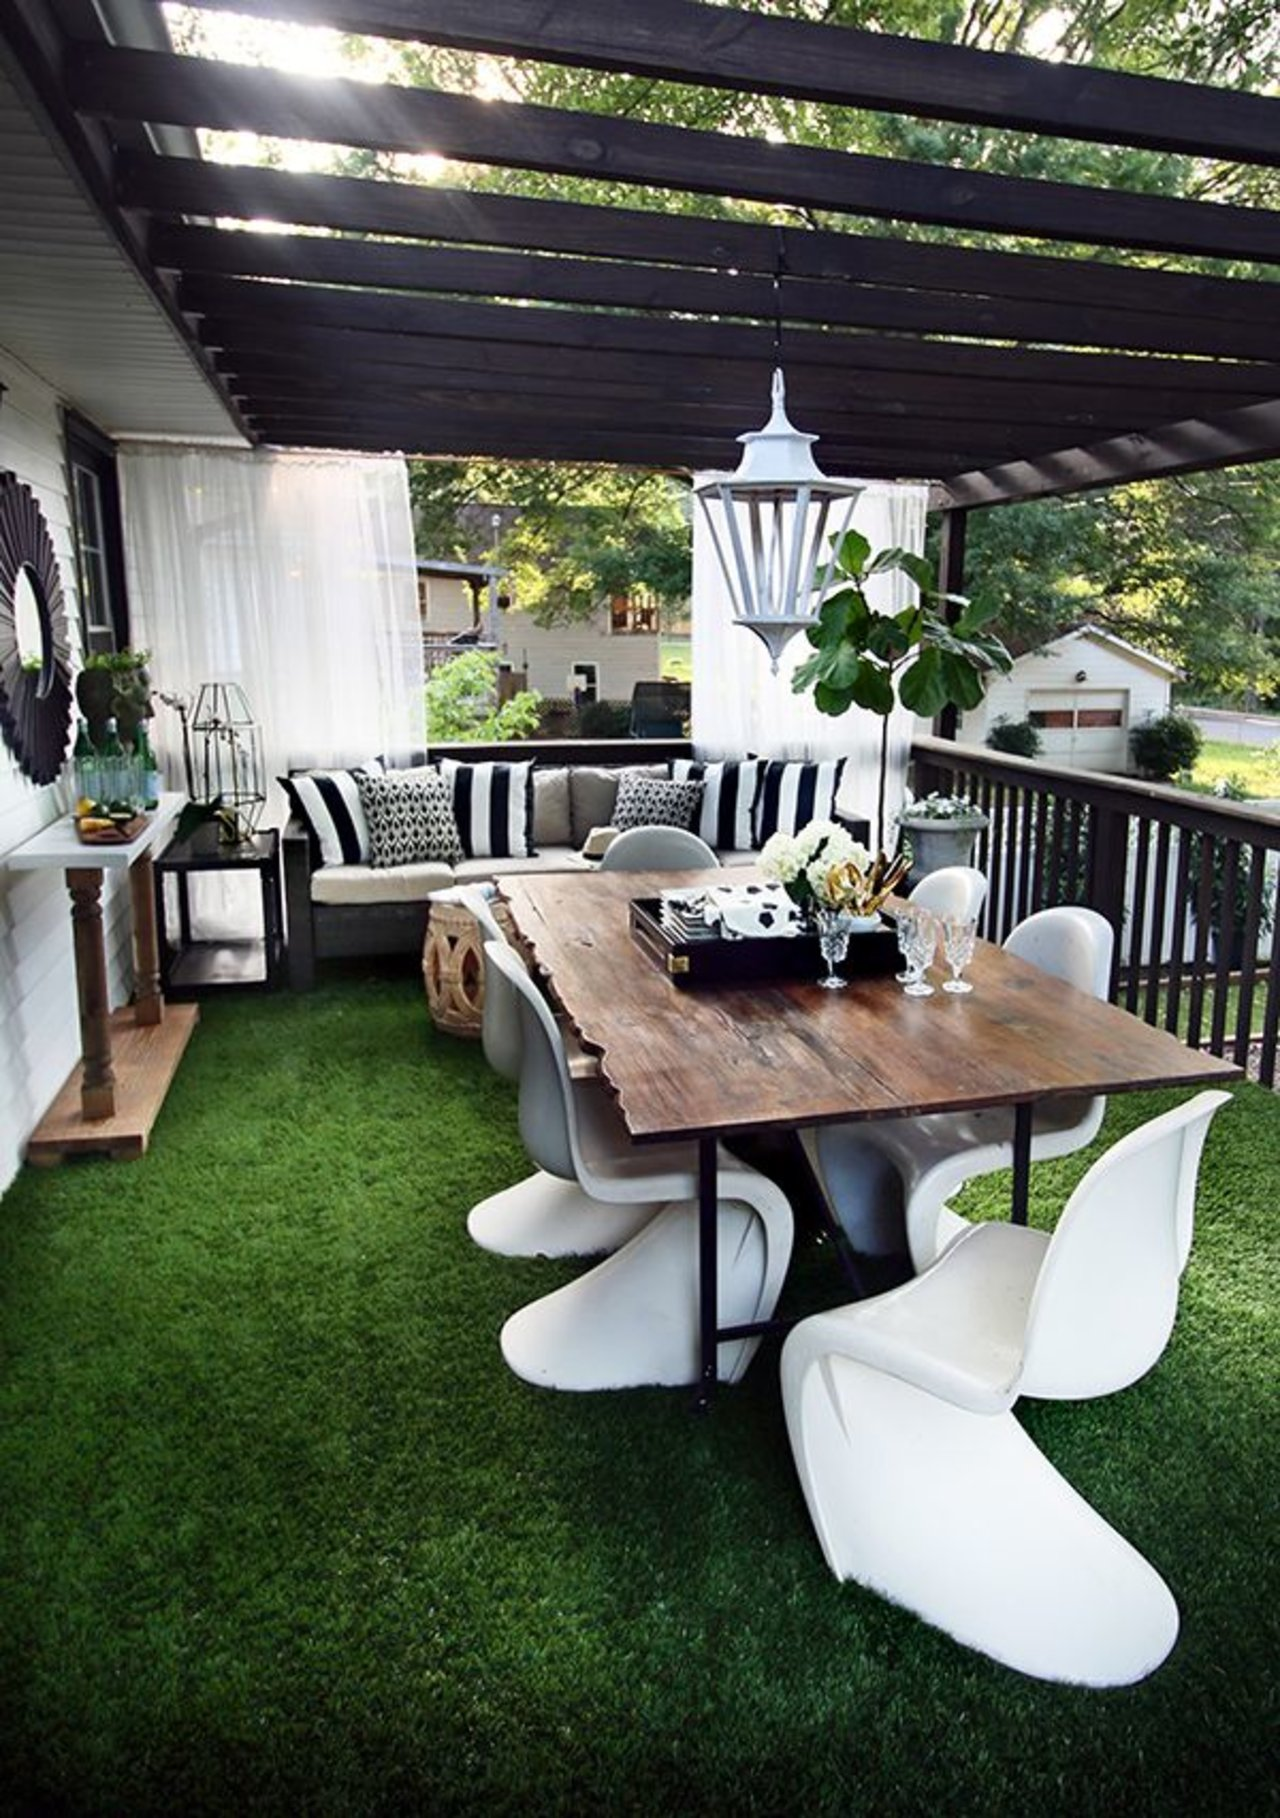 One Room Three Looks A Classy Modern Outdoor Living